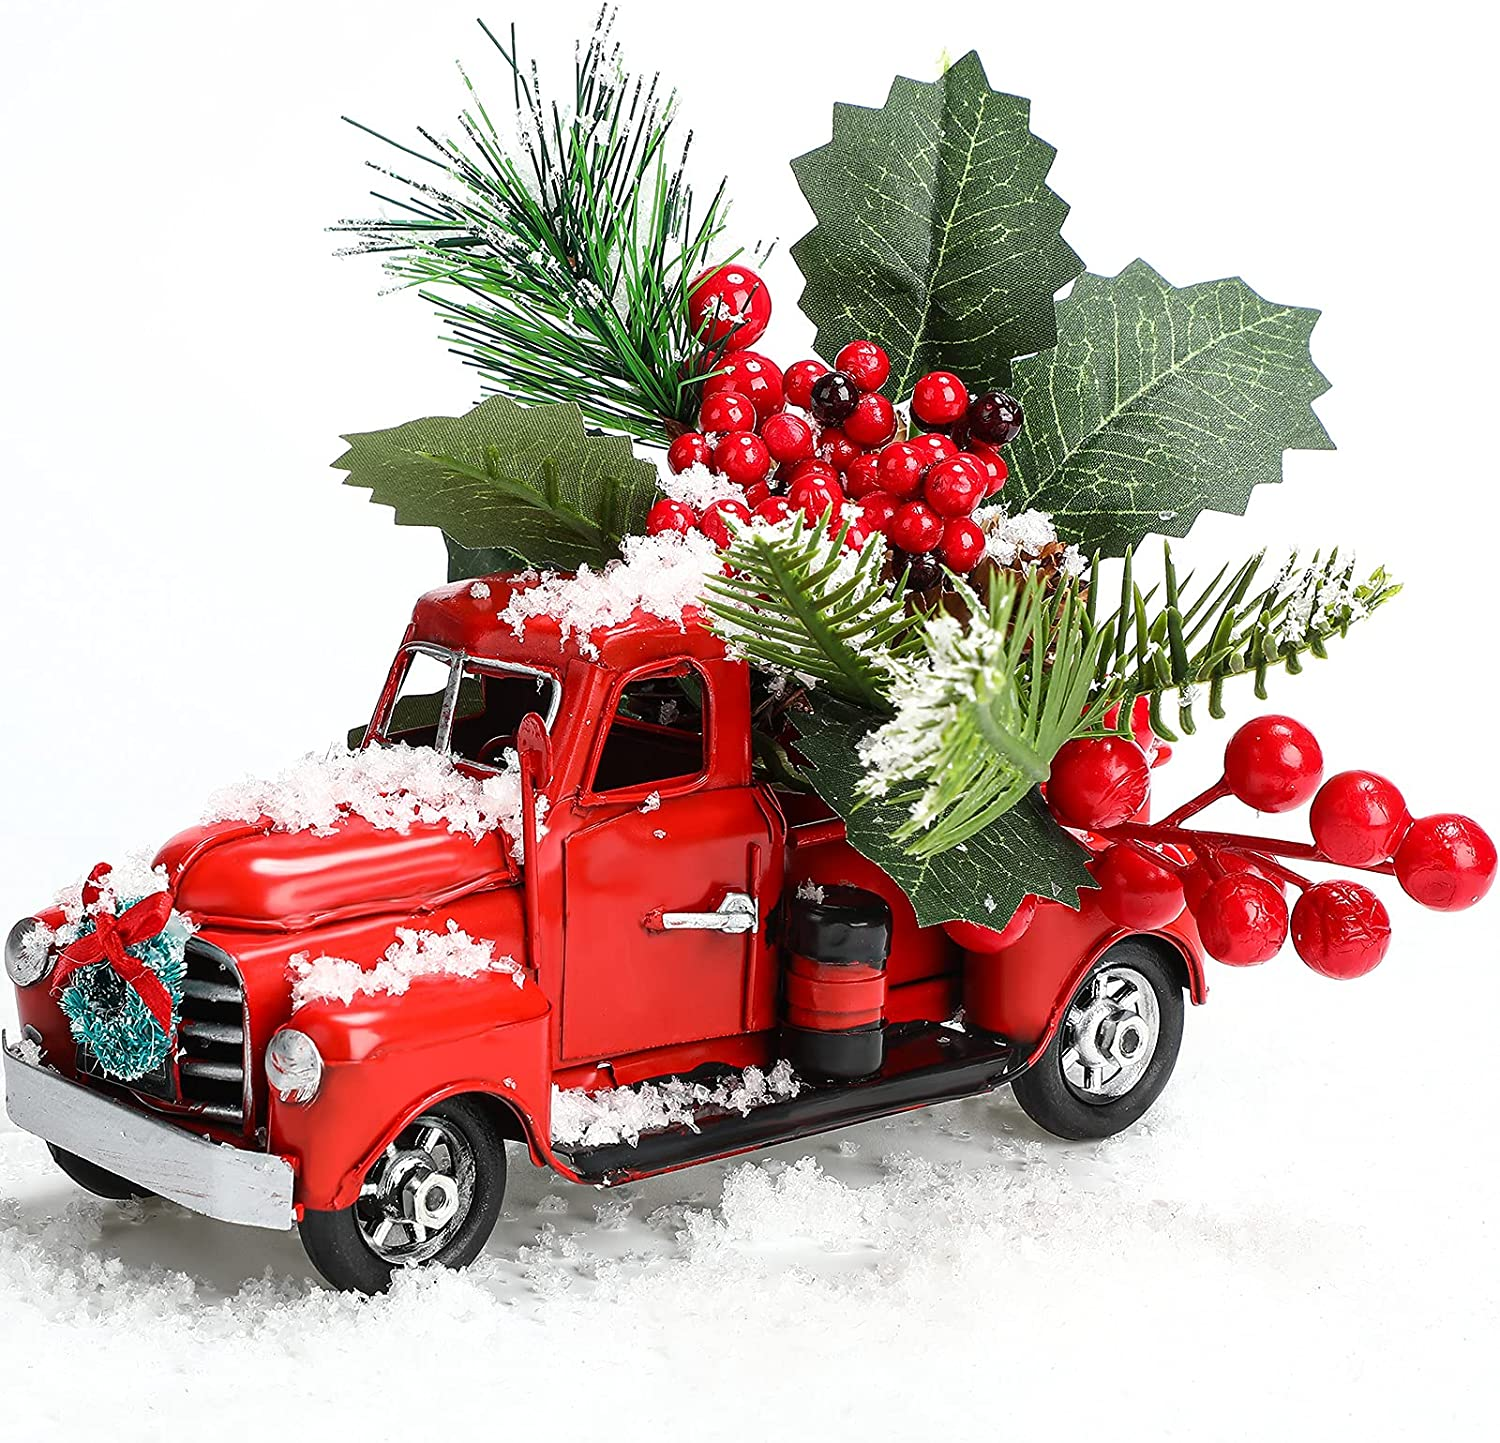 Christmas Vintage Red Truck Decor Farmhouse Metal Pickup Truck Decor with Artificial Pine and Small Christmas Wreath Handcrafted Red Metal Truck Car Model for Christmas and Table Decoration